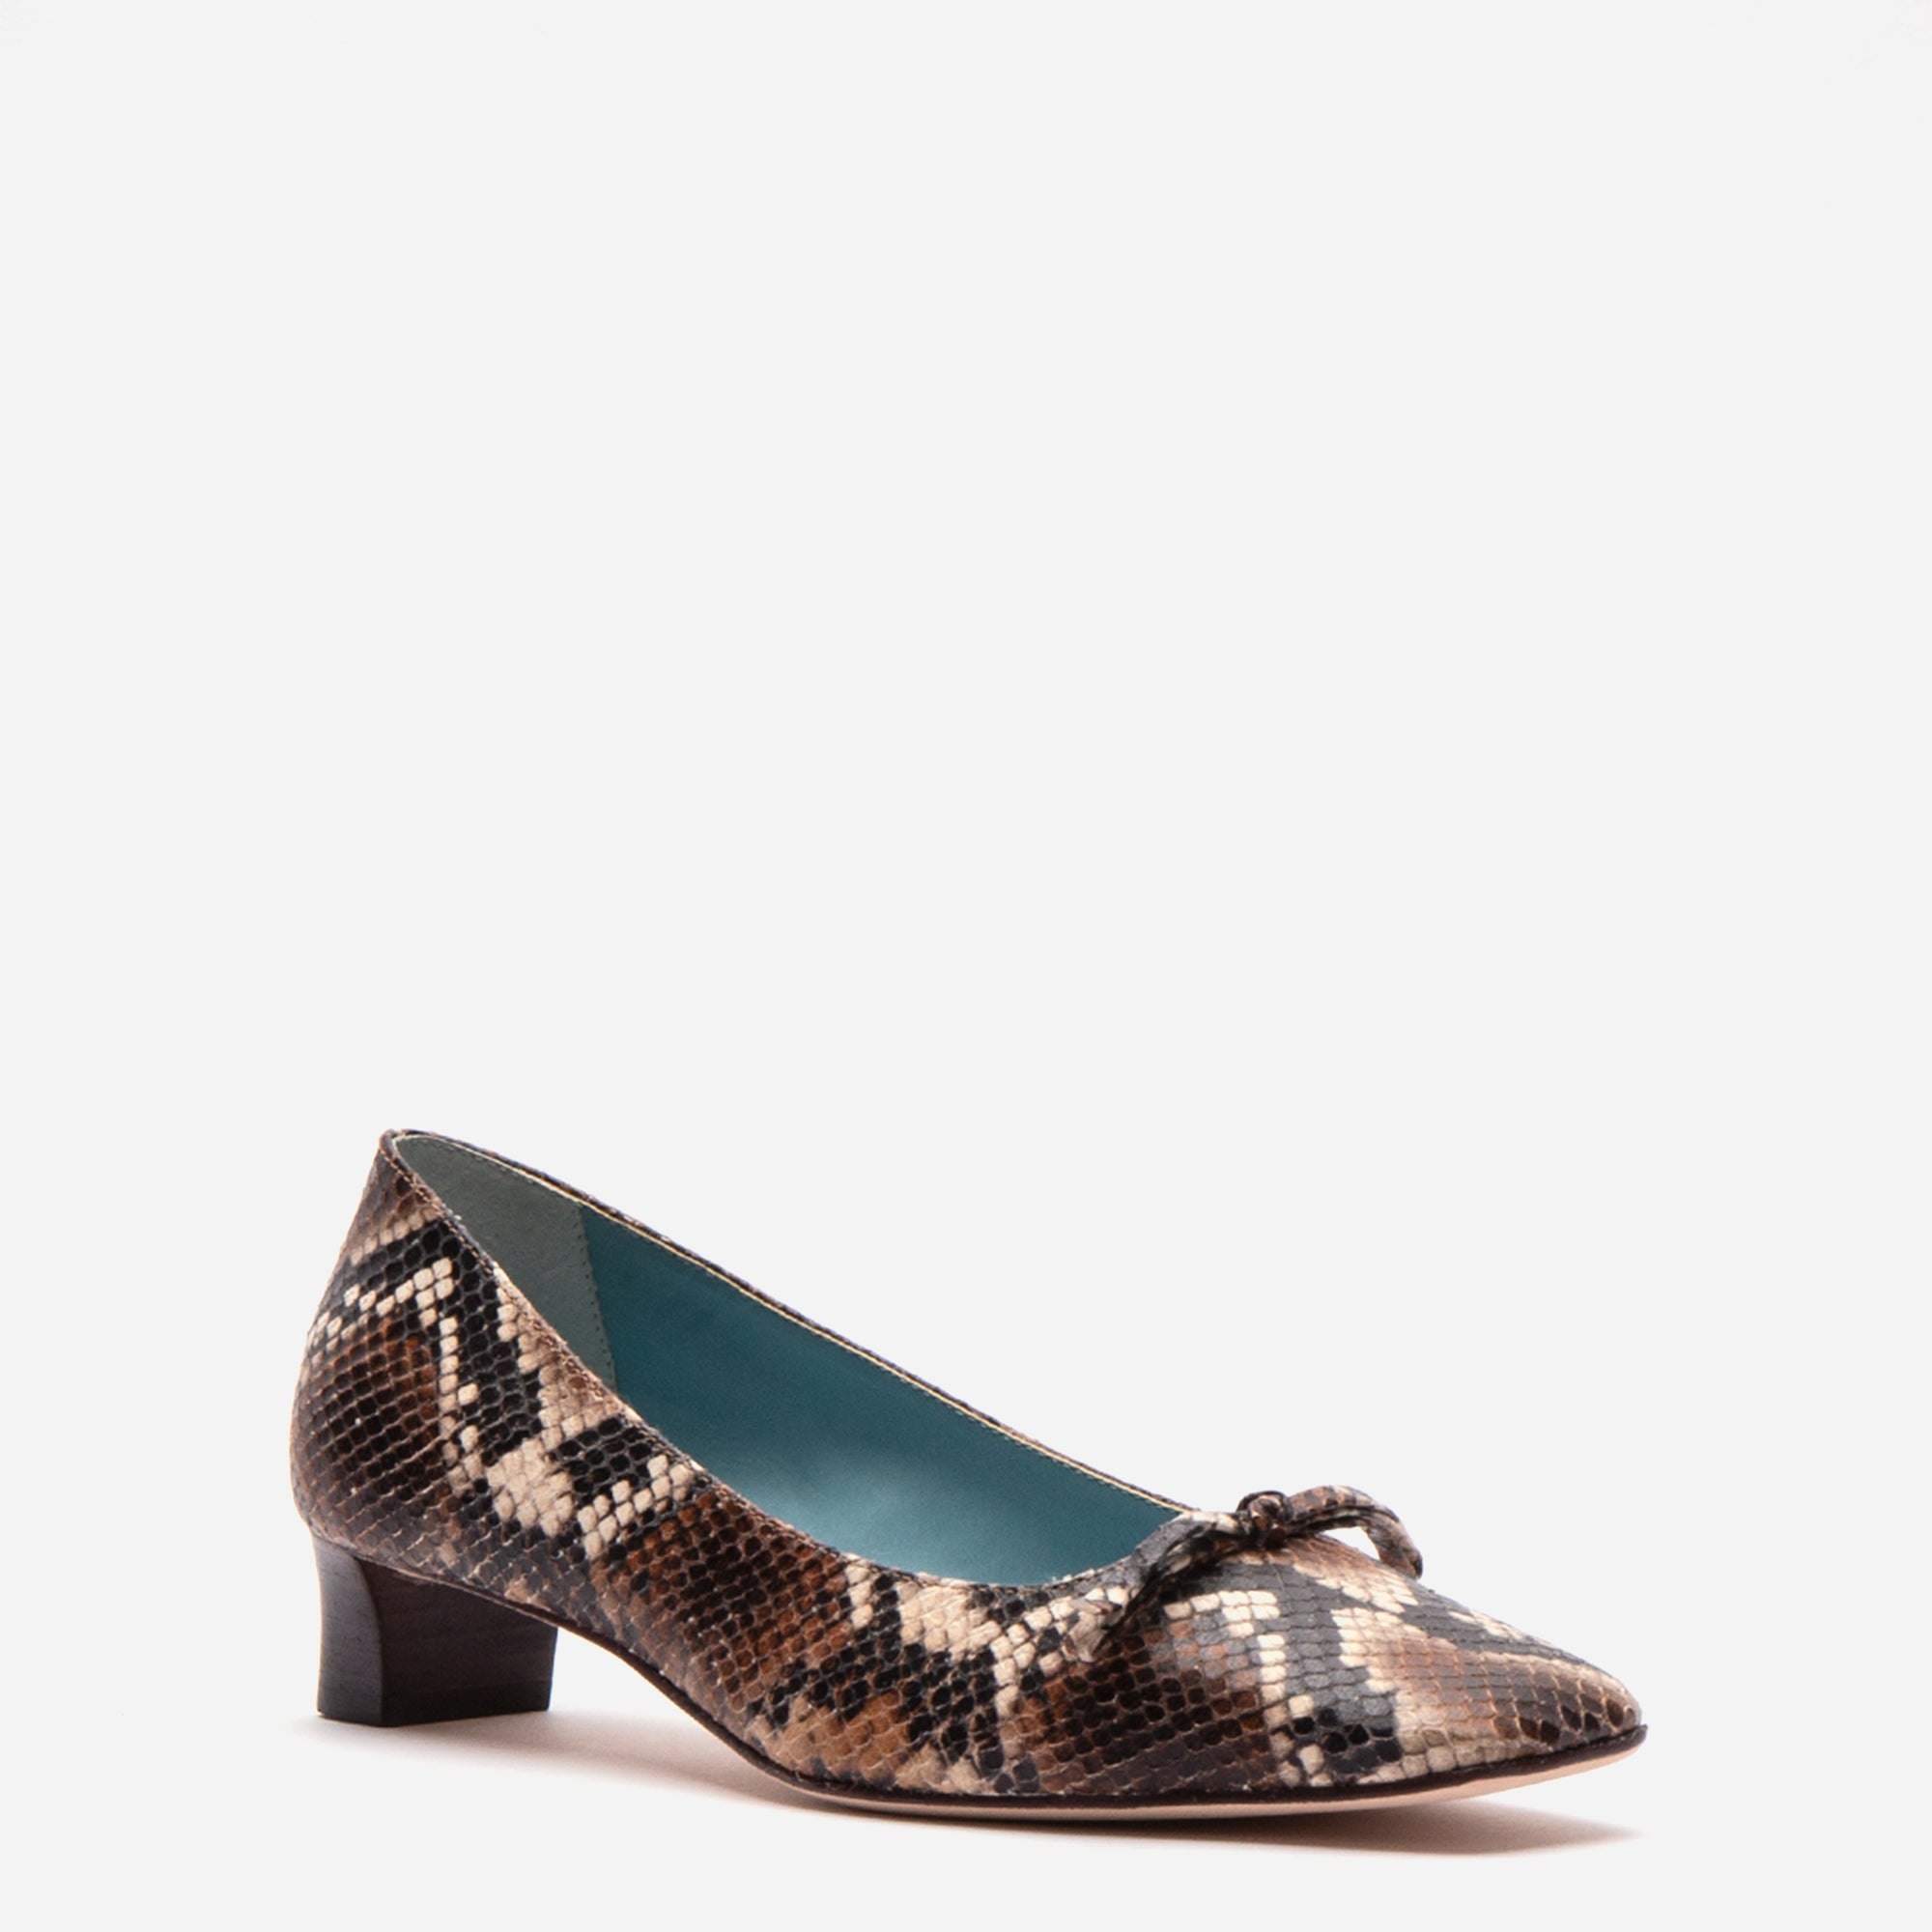 Mary Mini Block Heel Printed Snake Chocolate